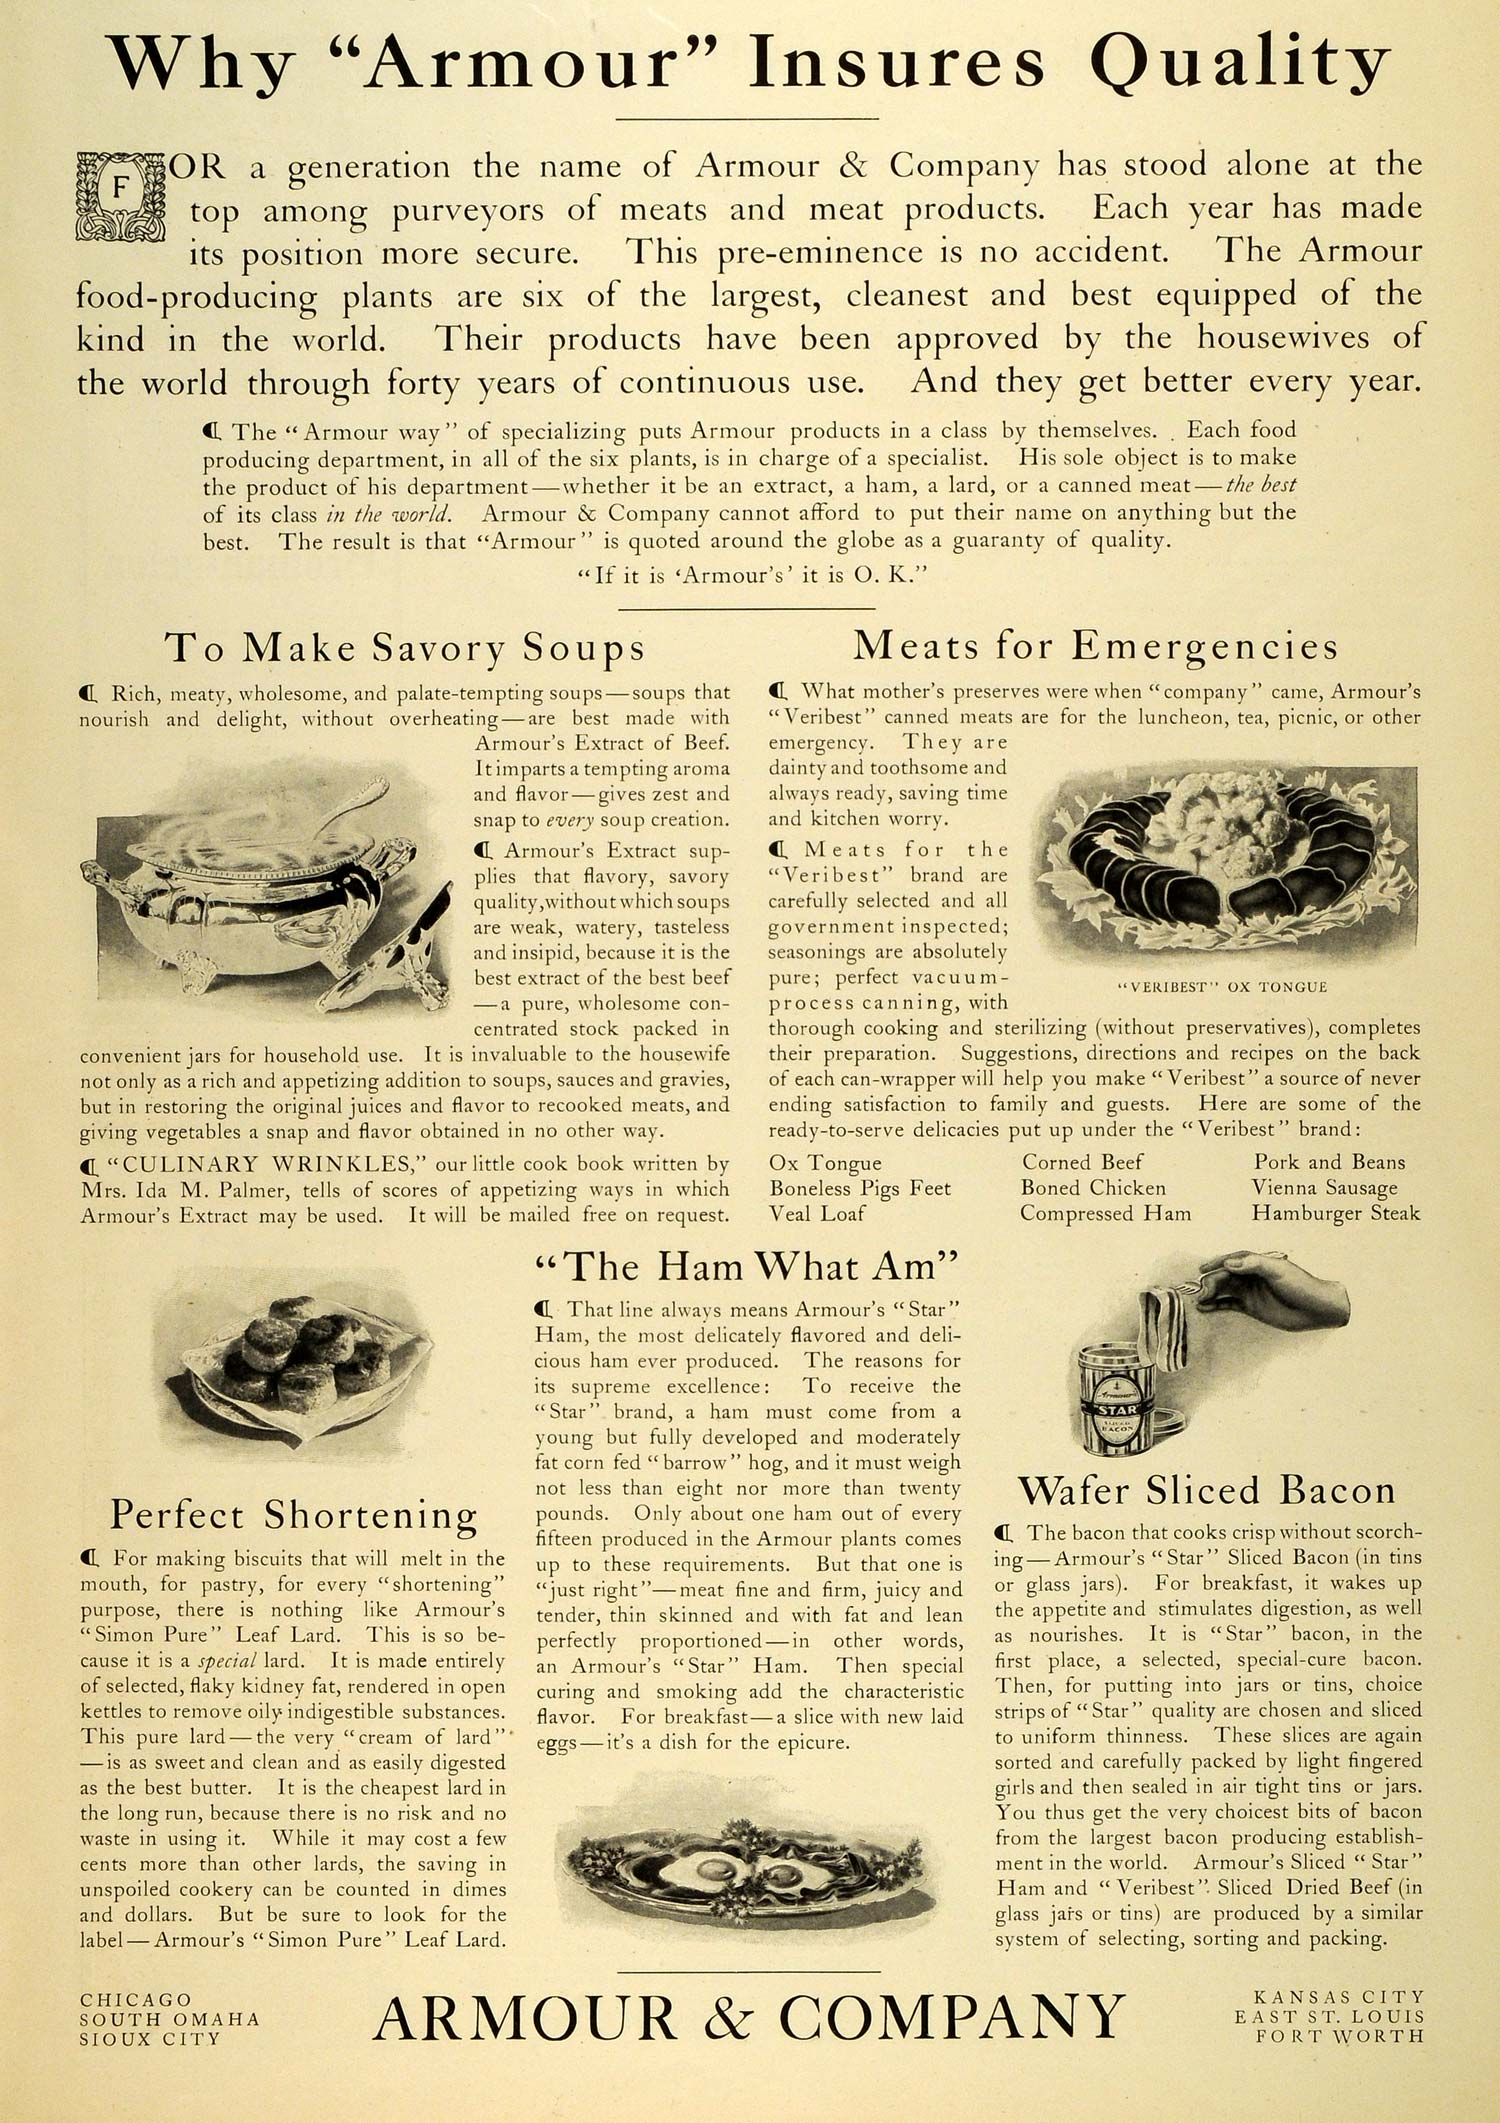 1906 Ad Armour Savory Extract Savory Soup Ox Tongue Star Wafer Sliced Bacon MX7